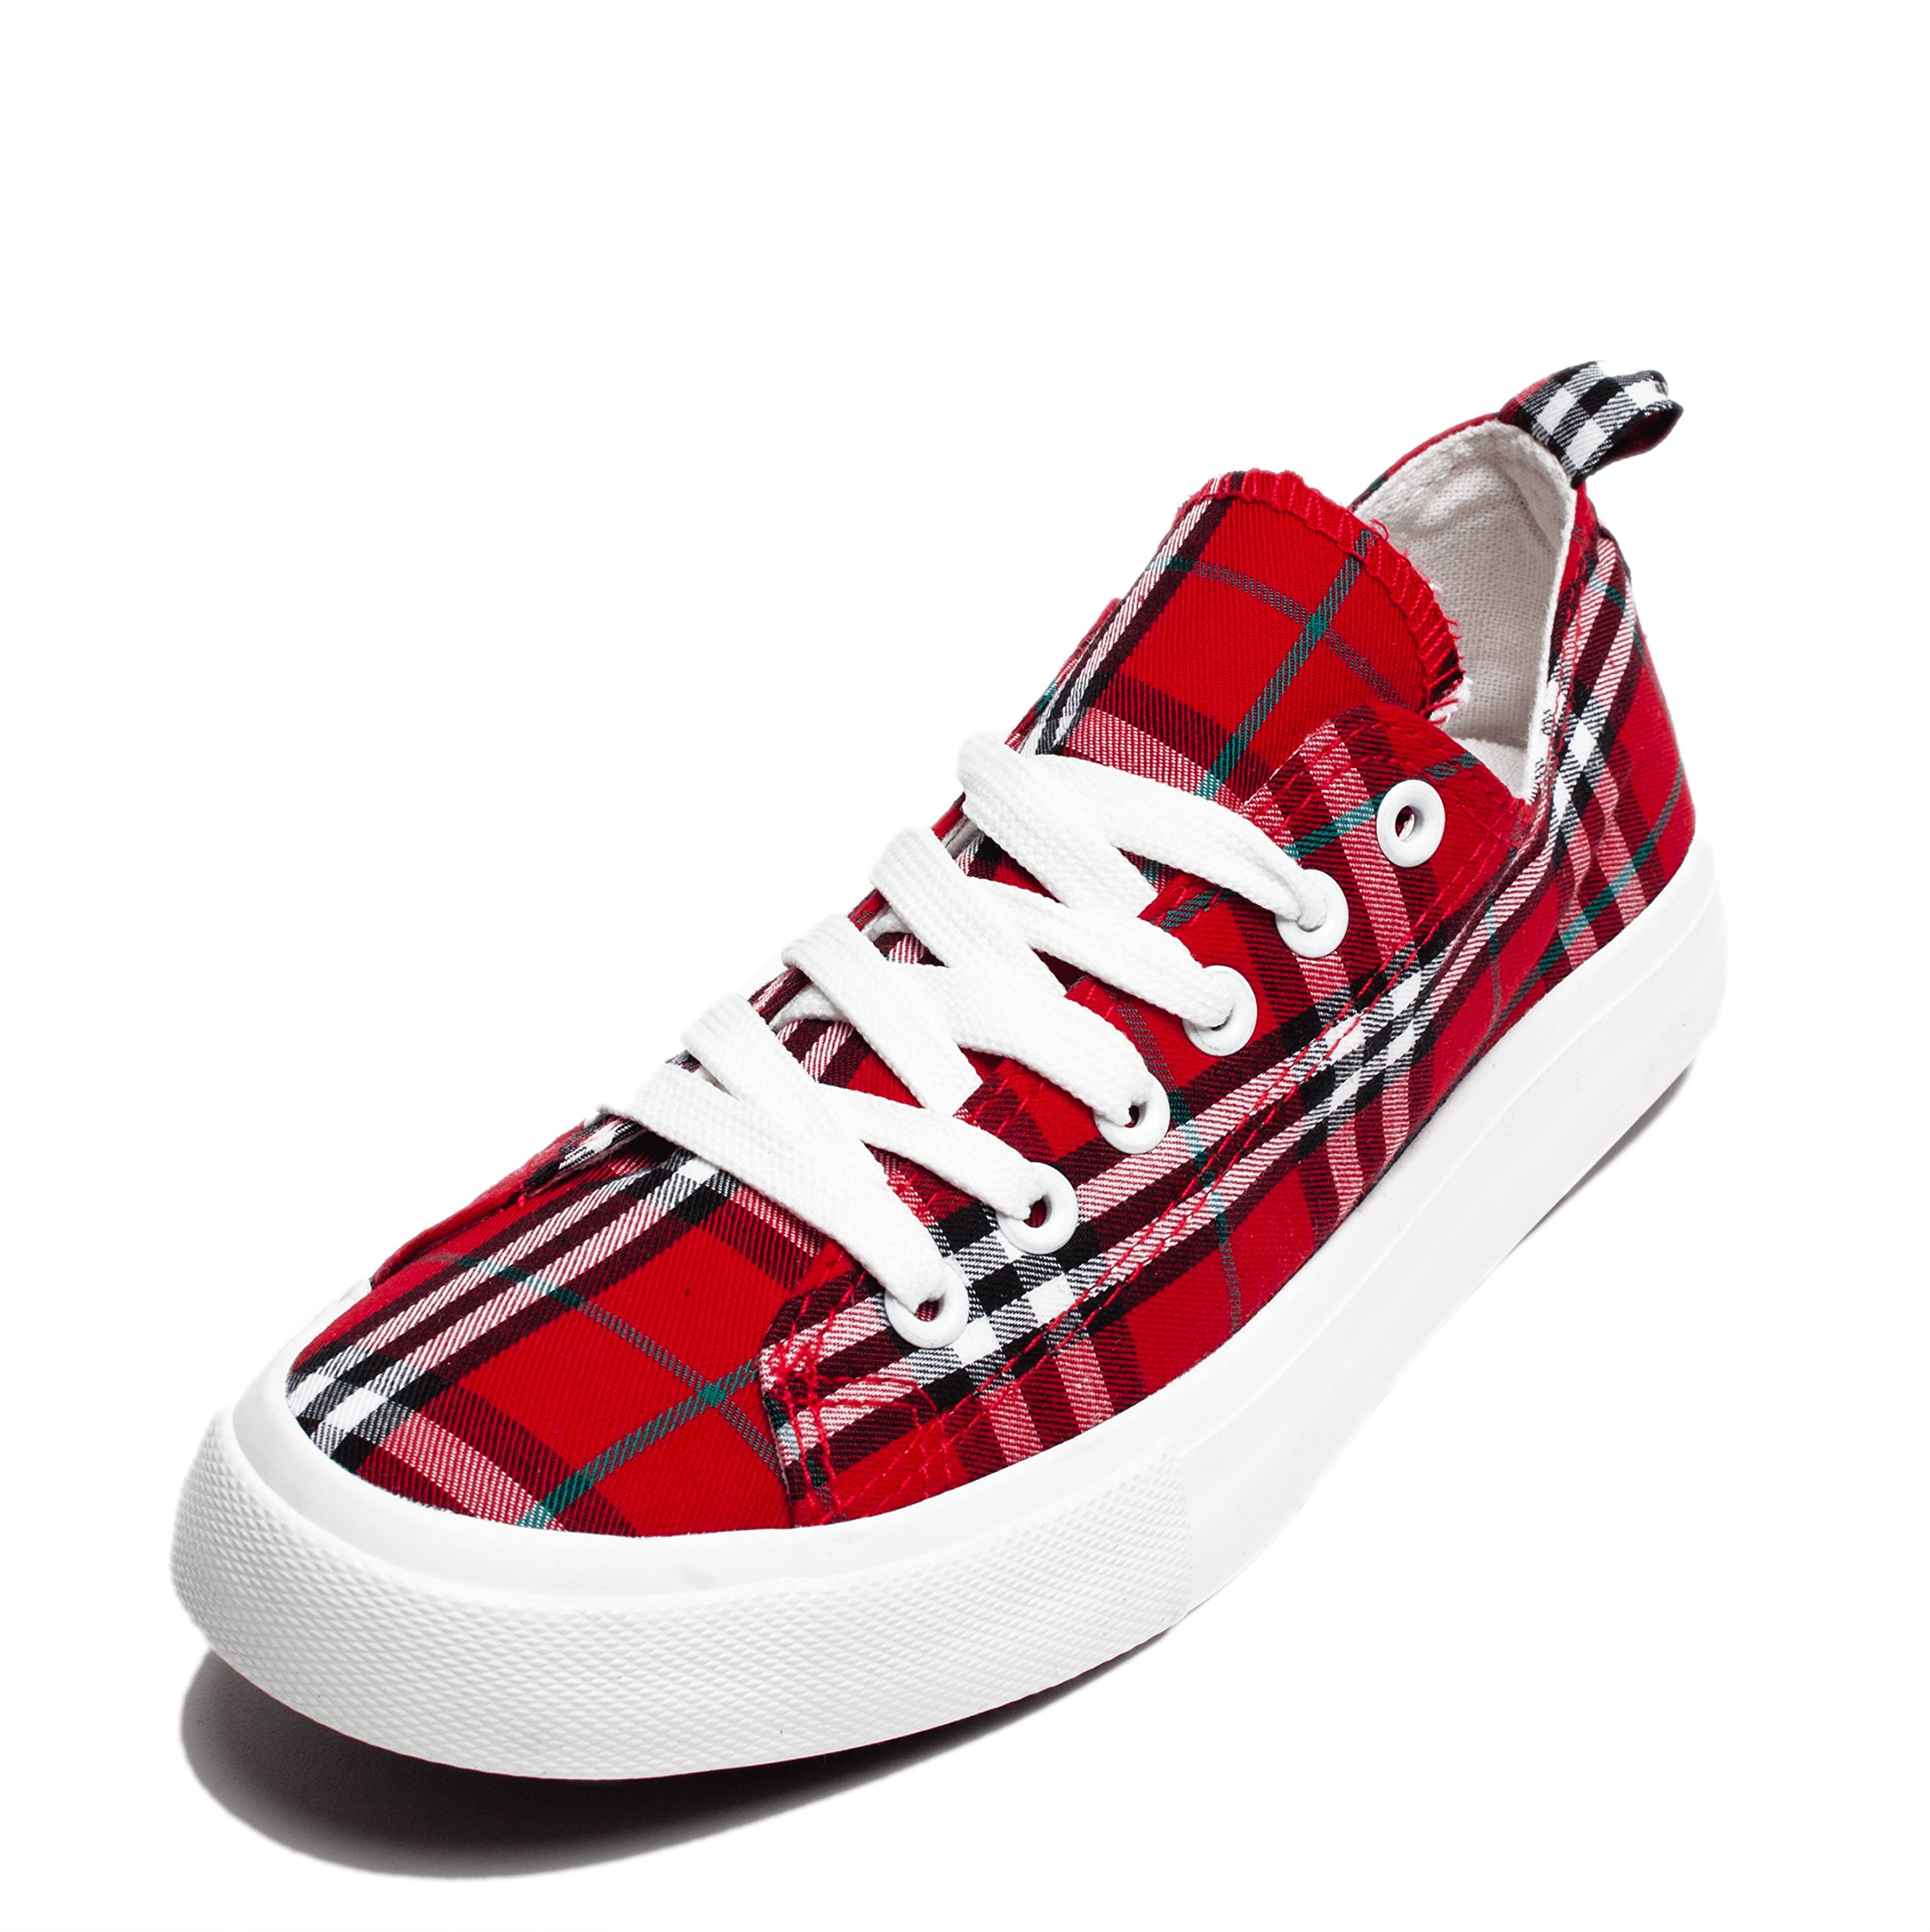 Fashion Vegan Leather Monochromatic Lace Up Colored Sneakers, Low Top Round Toe Shoes, Stylish and Comfortable (8, Red and Black Plaid)